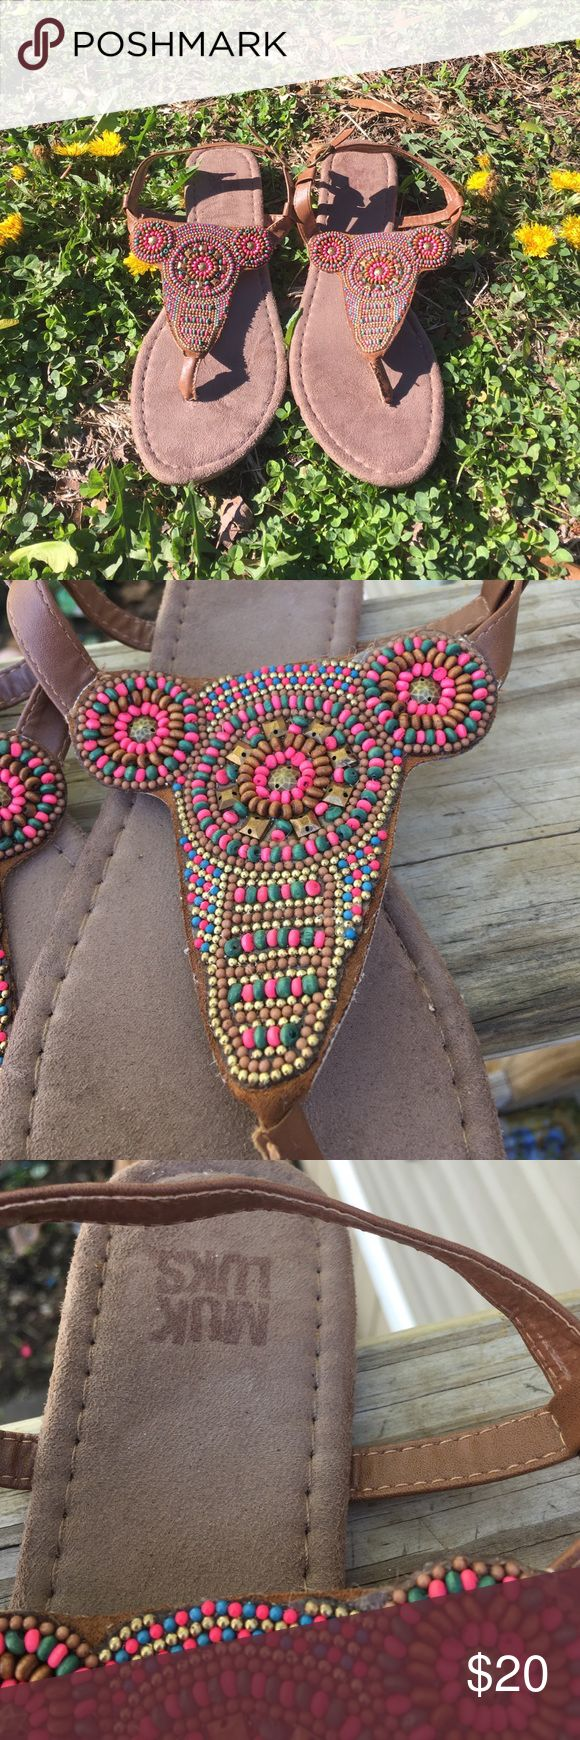 Size 9 Muk Luk beaded sandals Beautiful beaded sandals, only worn once but they are to small for me. I'm normally a 9 1/2. Would look great with jeans, shorts, dress or maxi skirt! Muk Luks Shoes Sandals